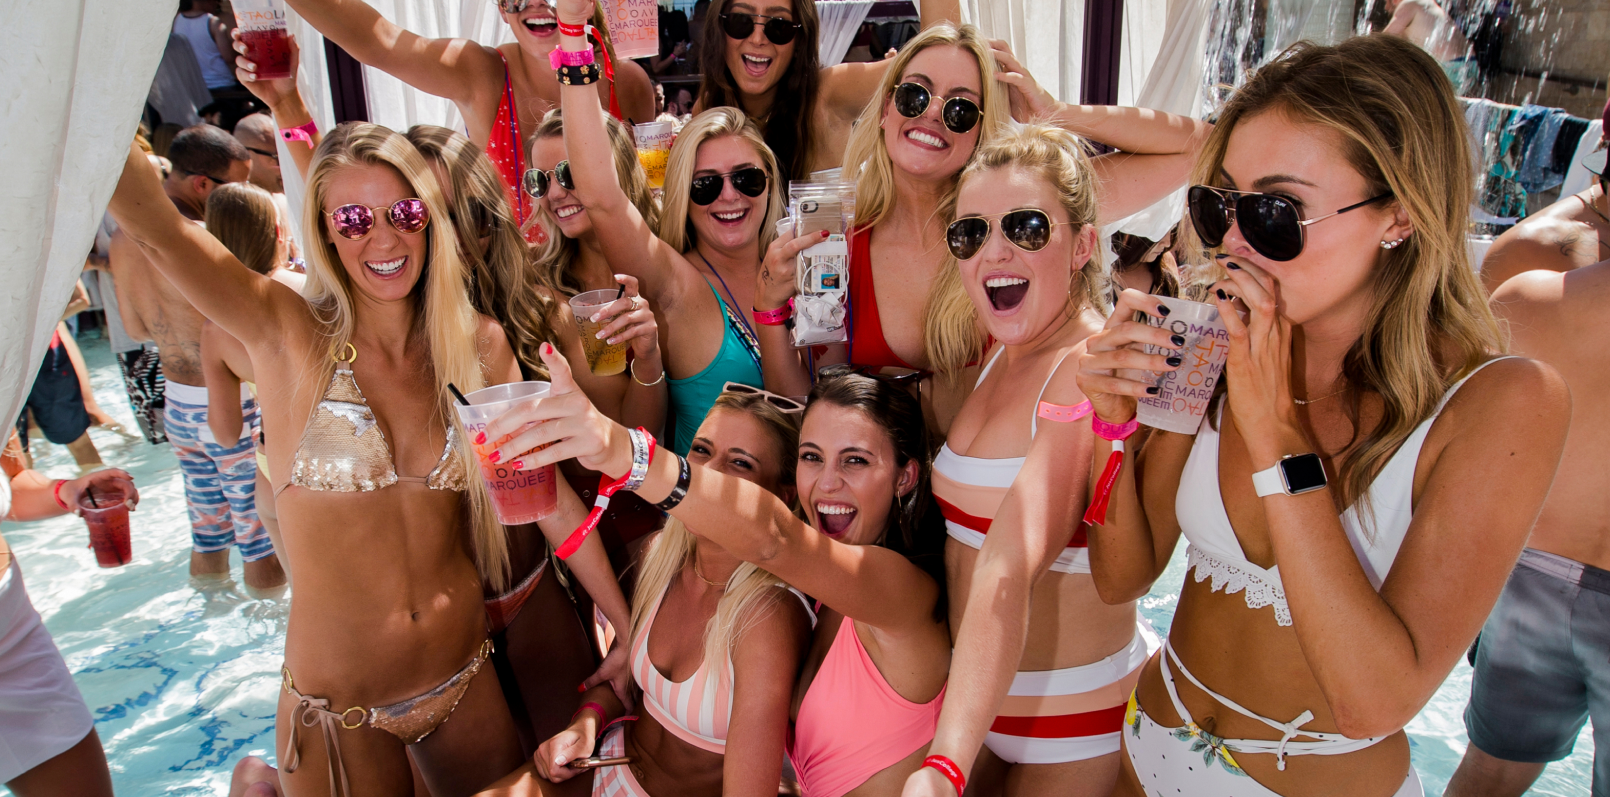 ladies at a pool party